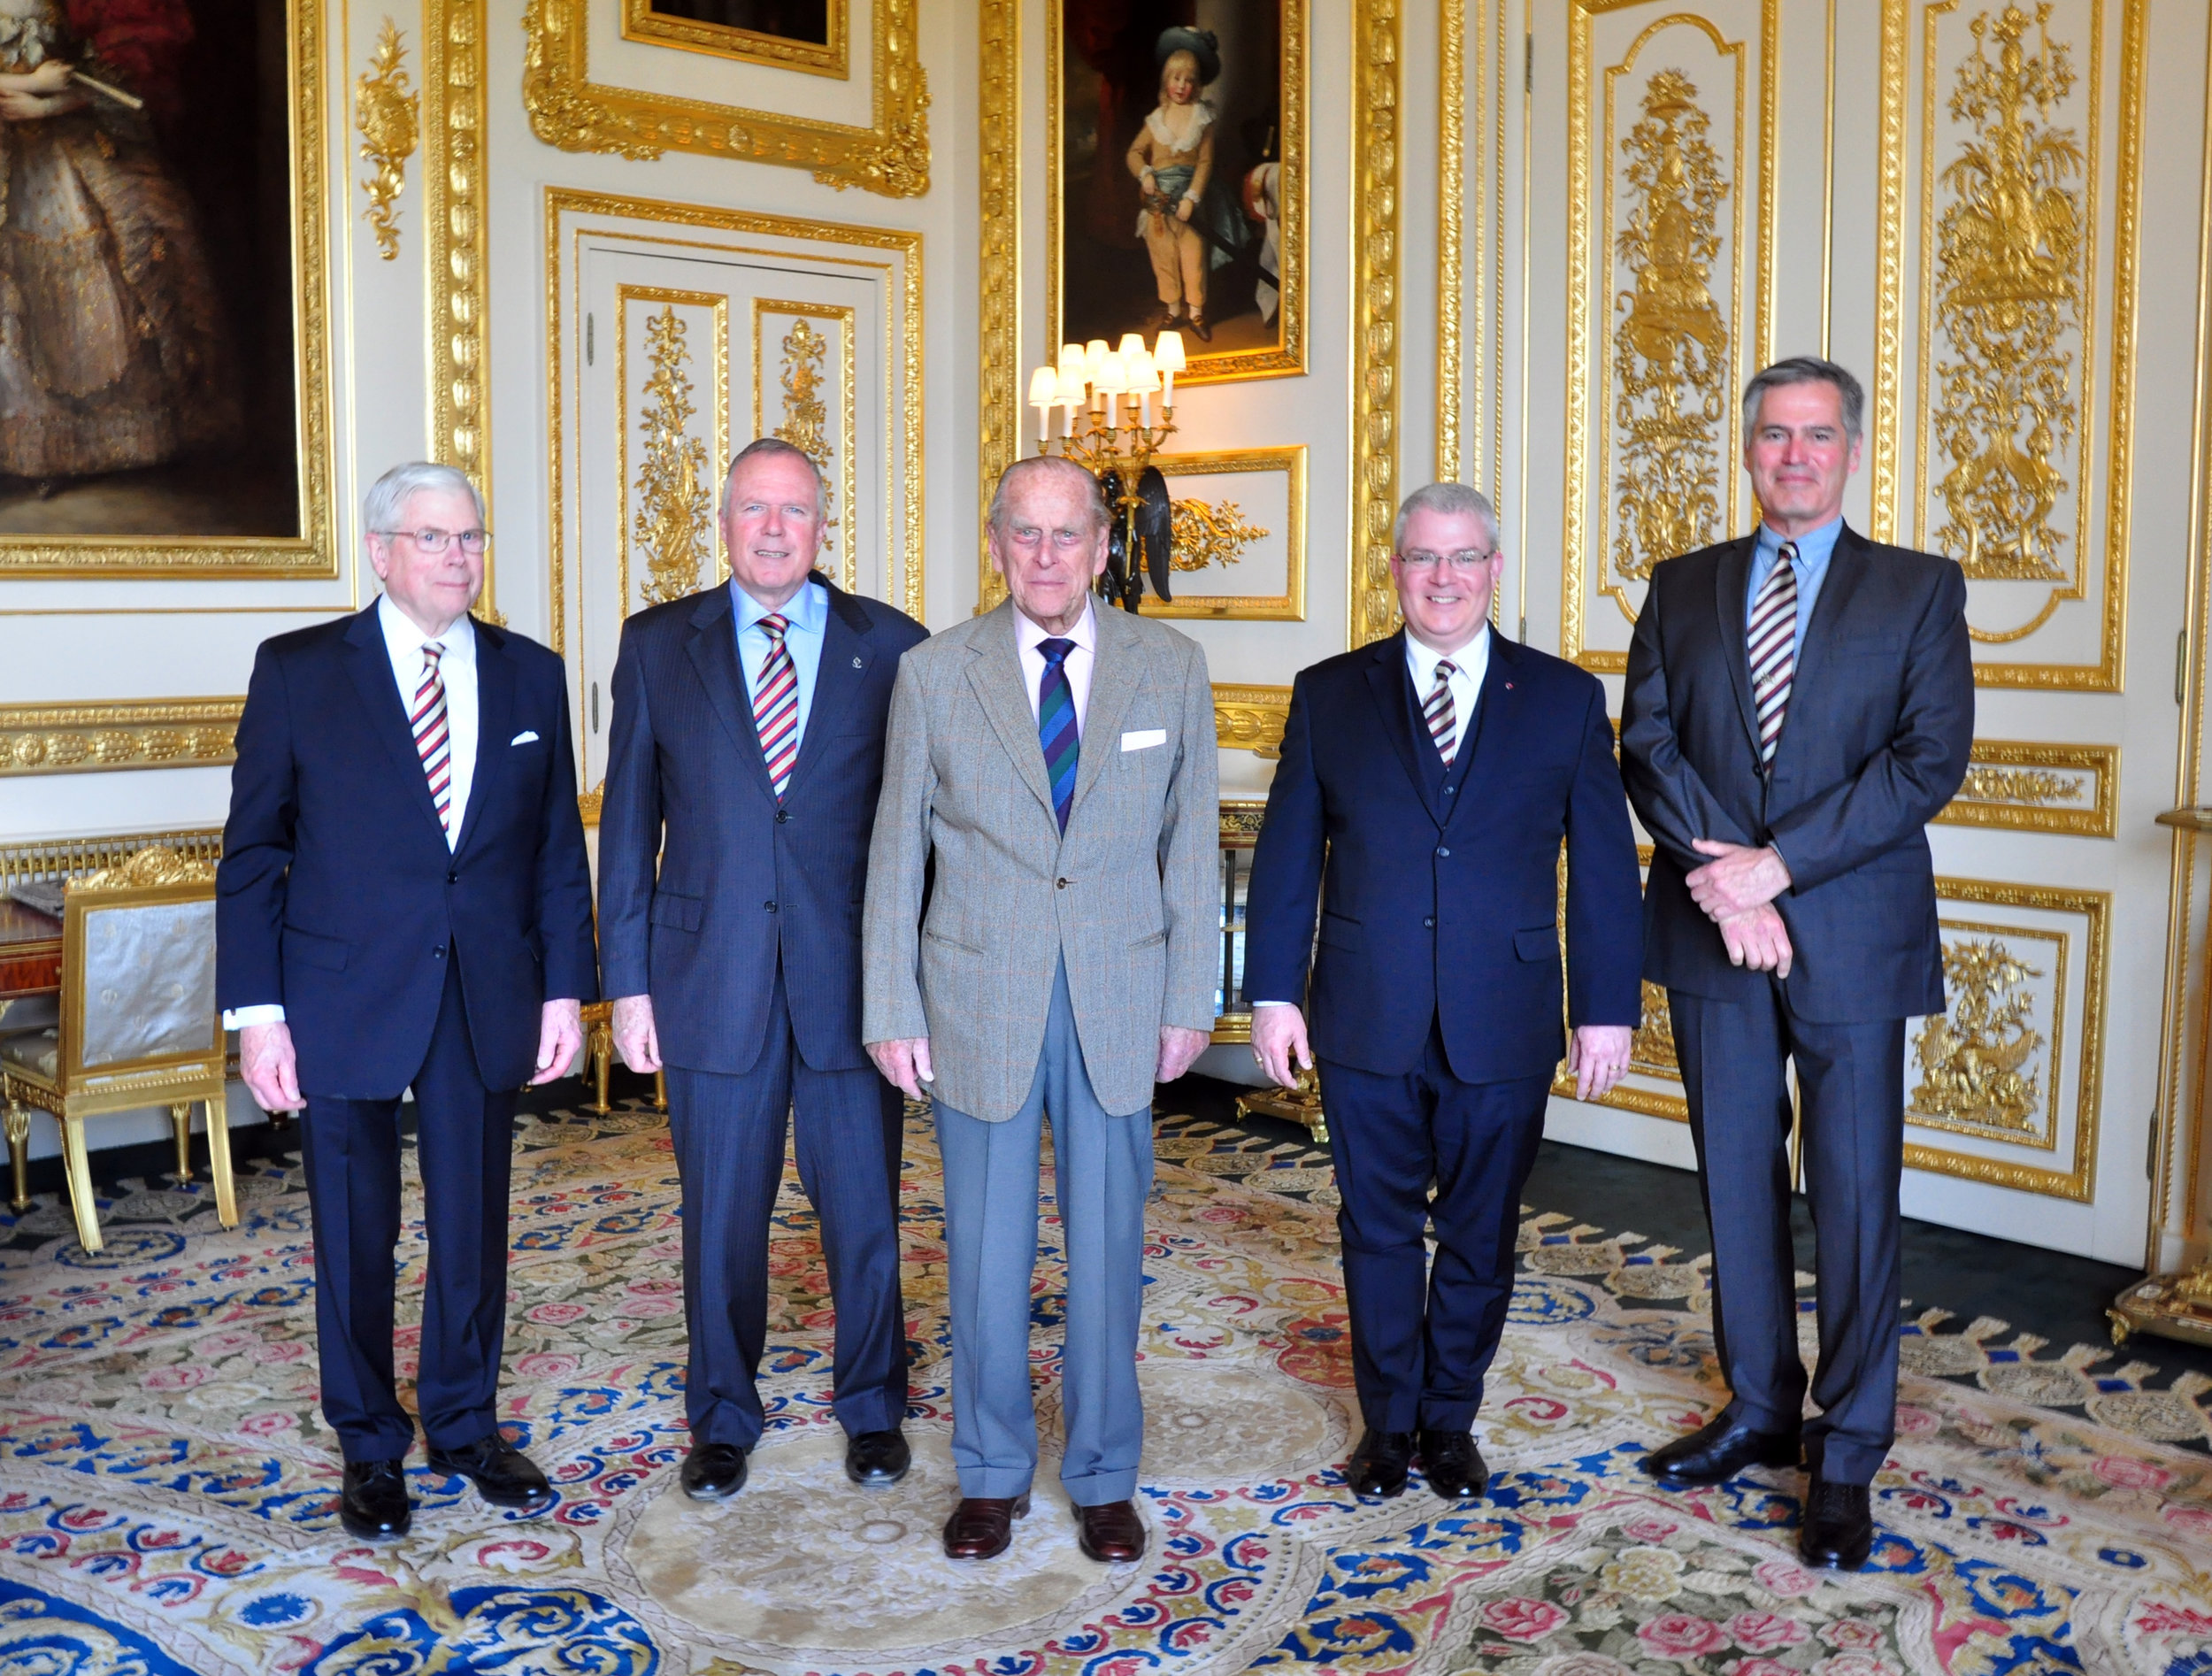 From left to right Honorary Colonel Michael Shields, Honorary Lieutenant Colonel Rod Hoffmeister, HRH Prince Philip, the Duke of Edinburgh, Lieutenant Colonel Paul Ursich, Regimental Sargent Major John O'Connor.